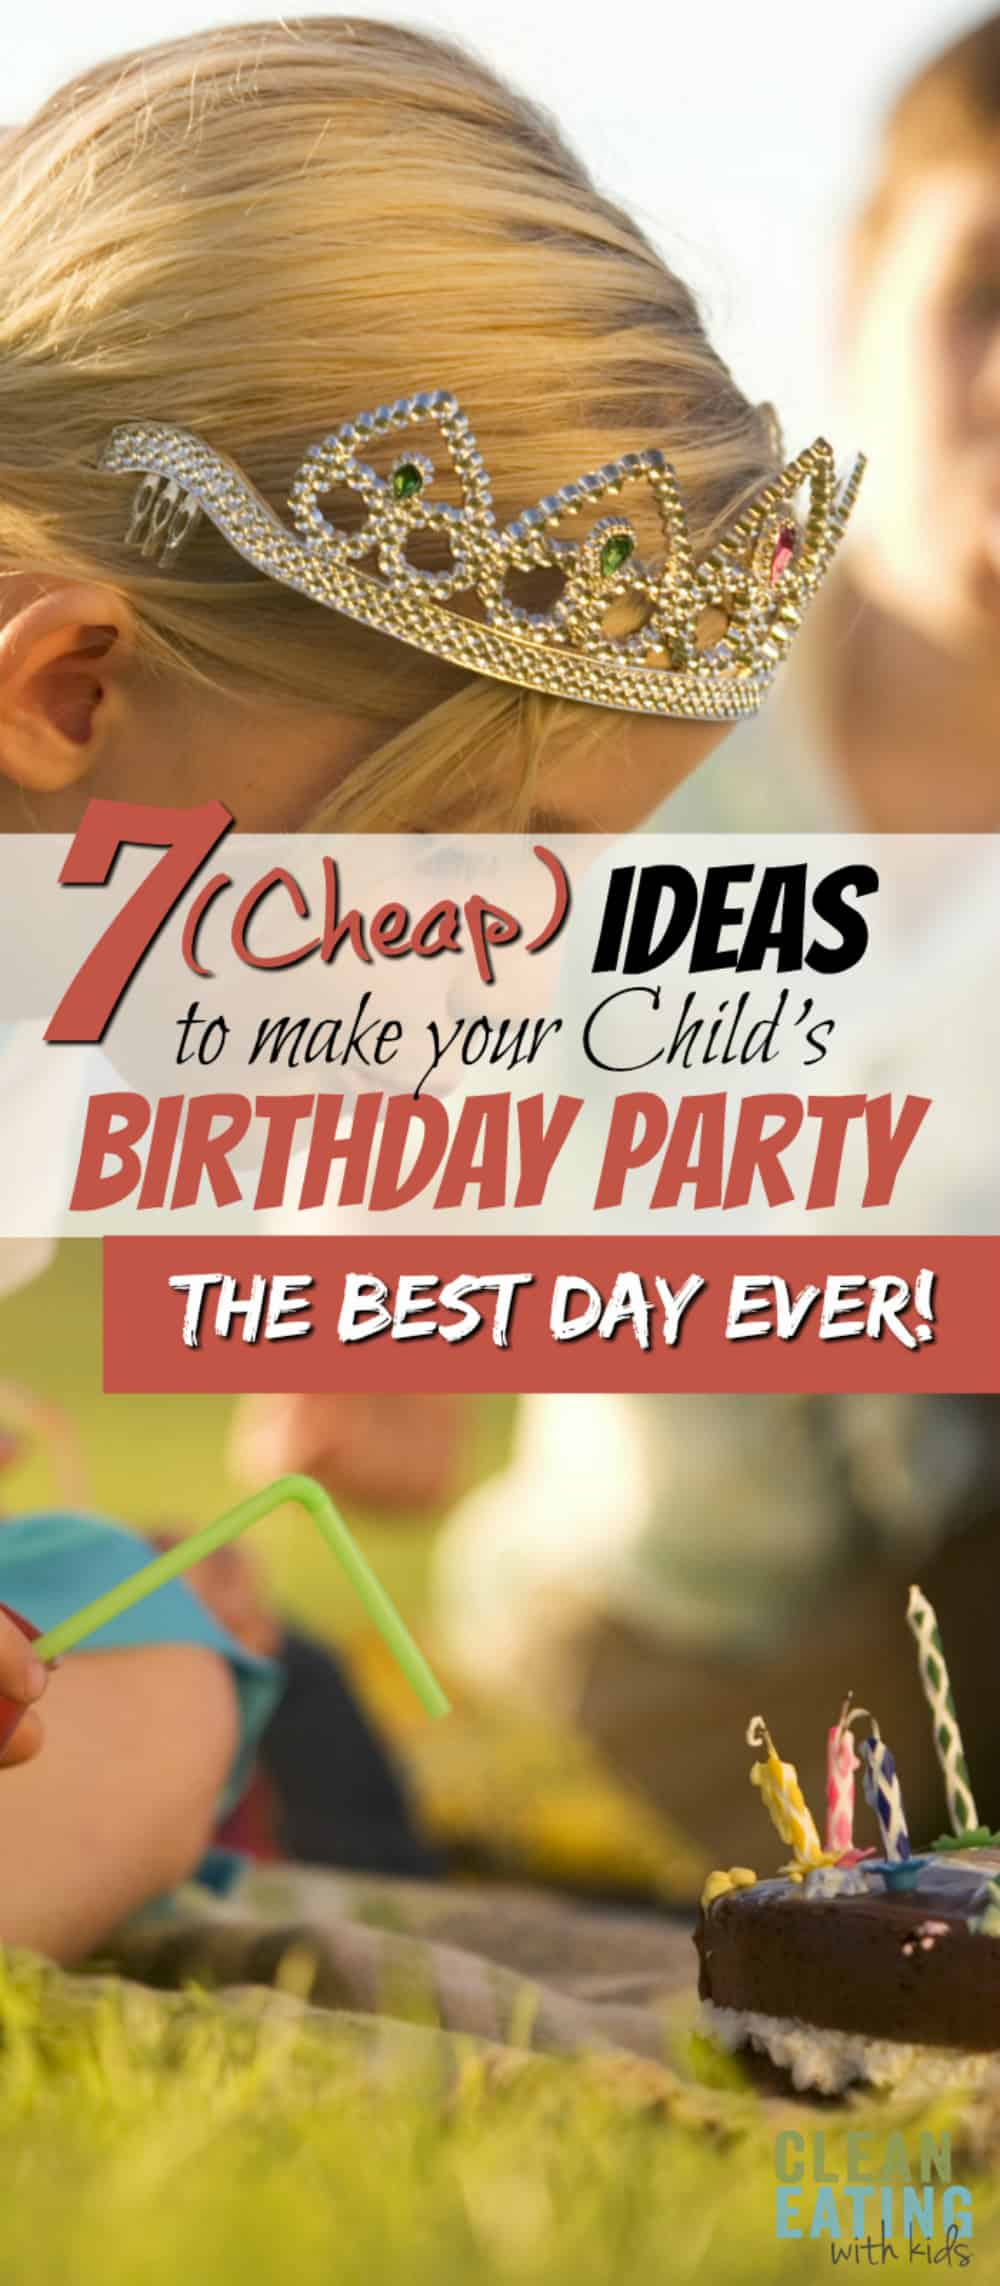 With four kids – two with birthdays a week before Christmas – we have had to be really creative when it comes to throwing Amazing(and Cheap) Birthday Parties for our kids. And we do aim for Amazing! It's the one time of year we get to make that day super special for them, so we try and make it memorable.